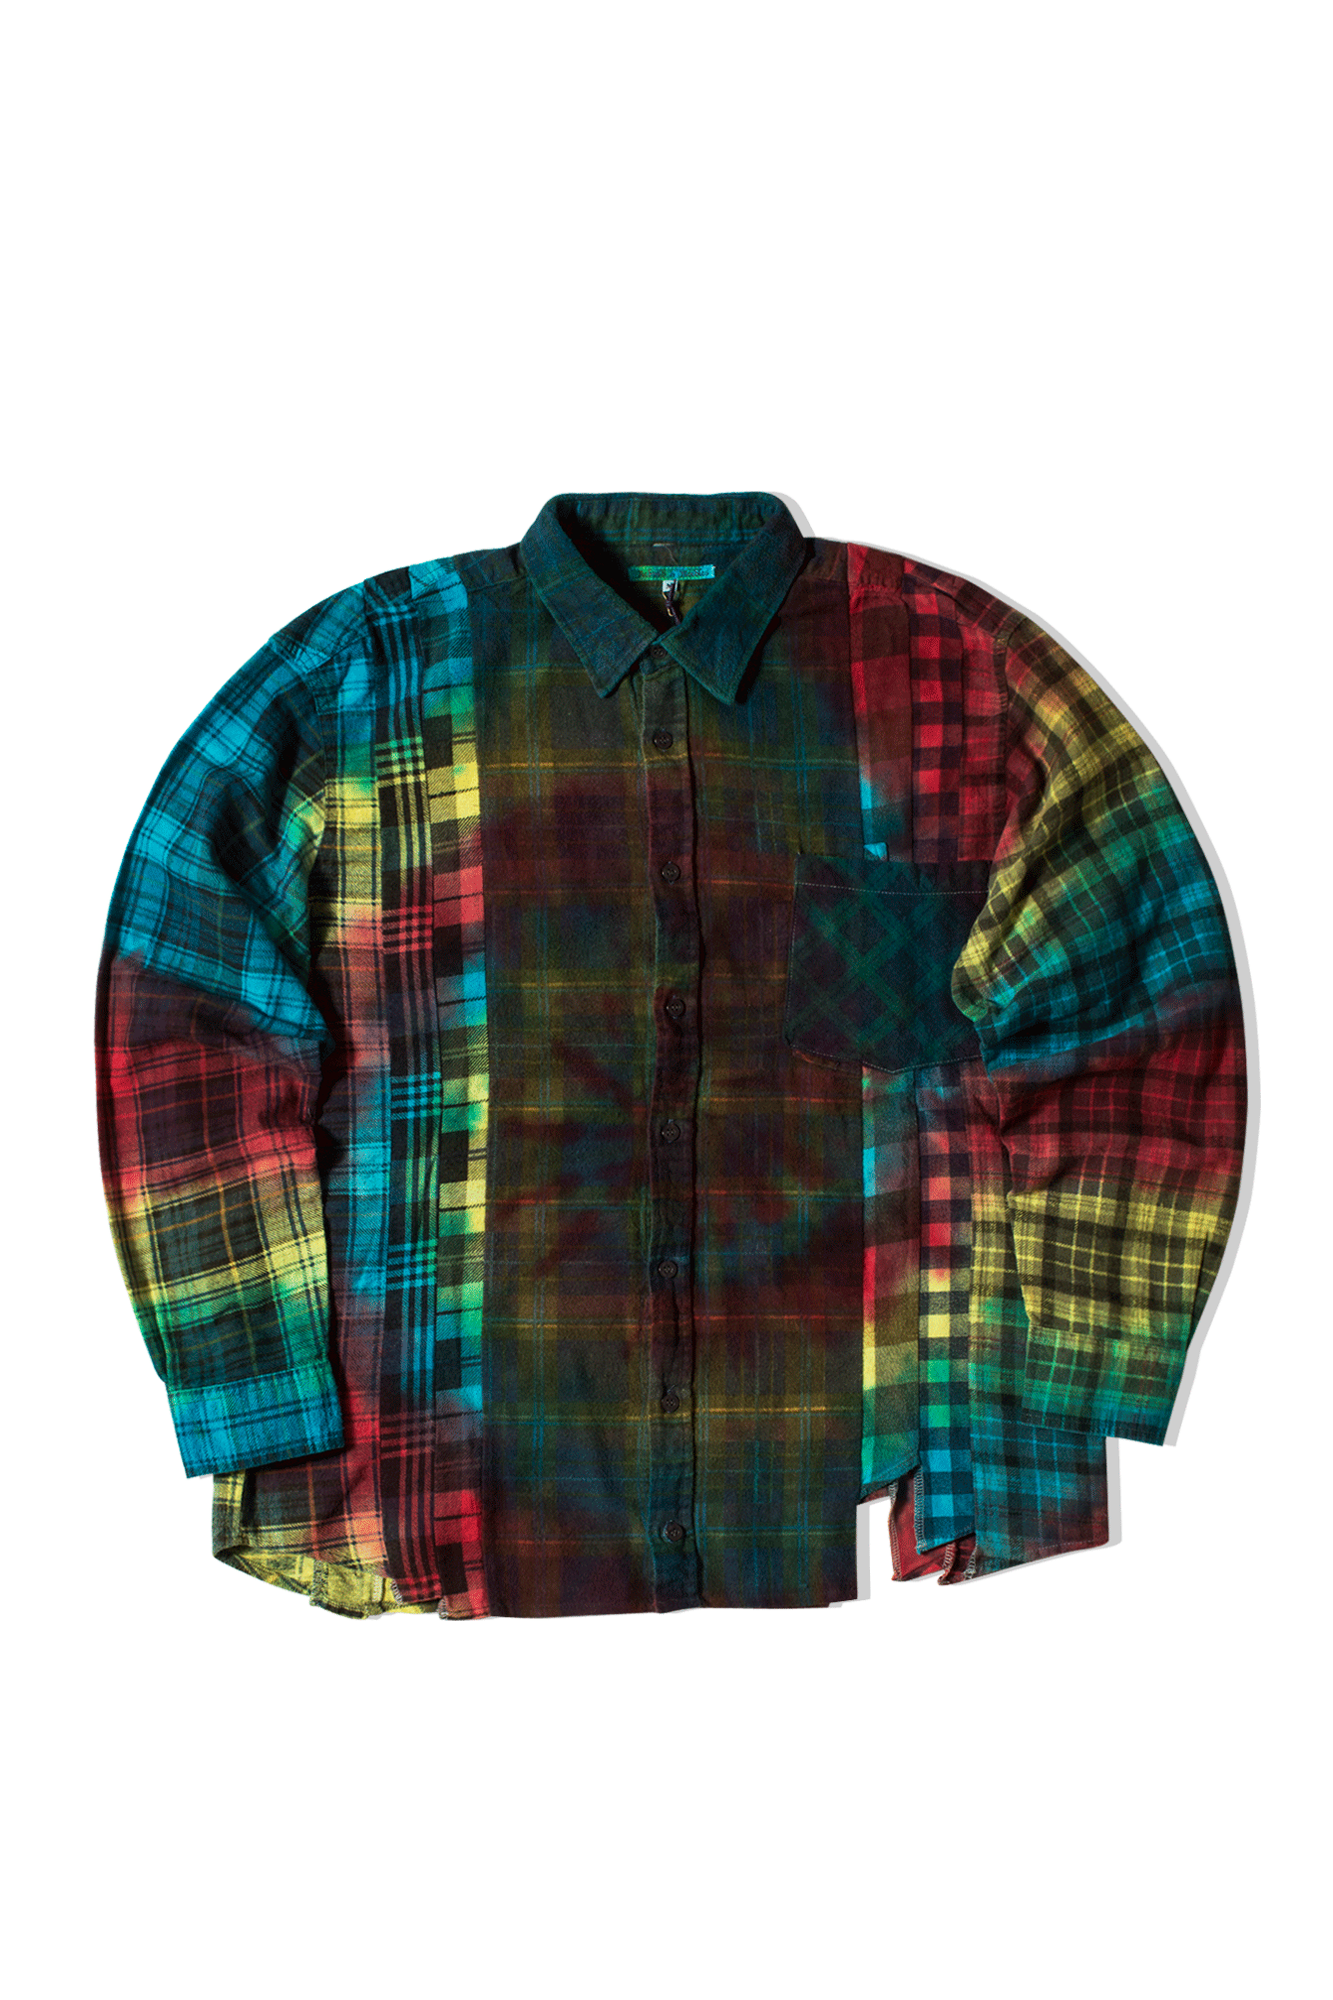 Needles Shirts Tie Dye 7 Cuts Flannel Shirt Multicolor IN241-M#000#MLT#M - One Block Down